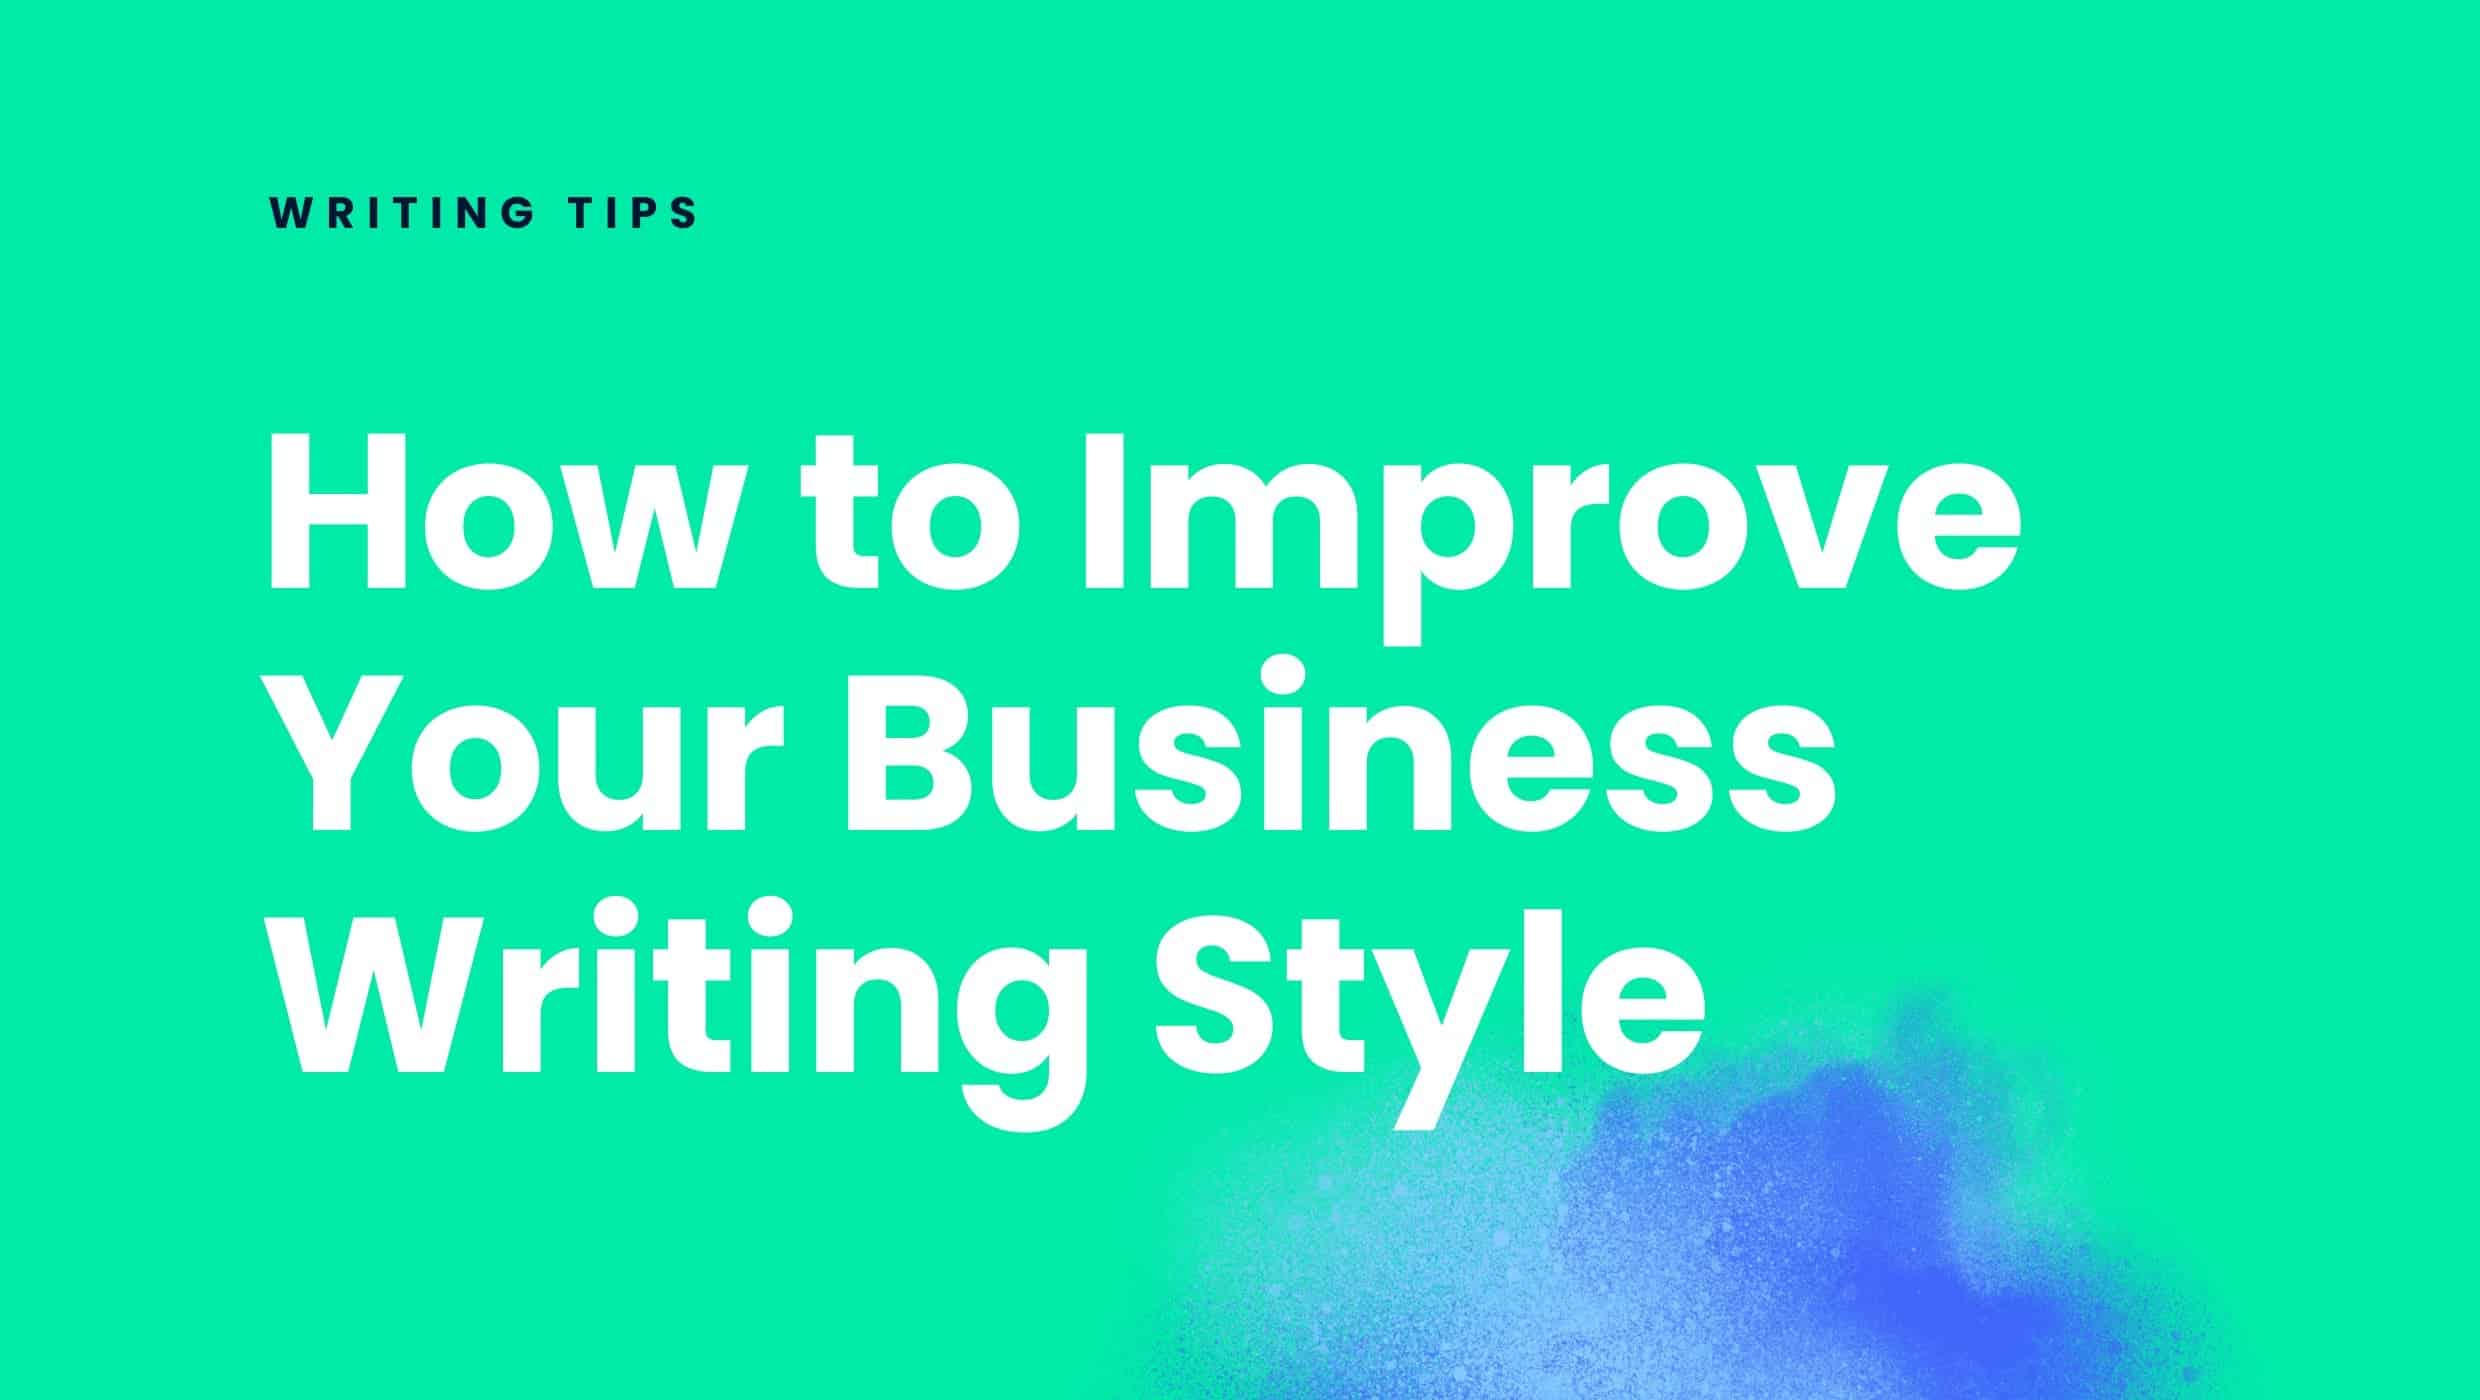 How to improve your business writing style